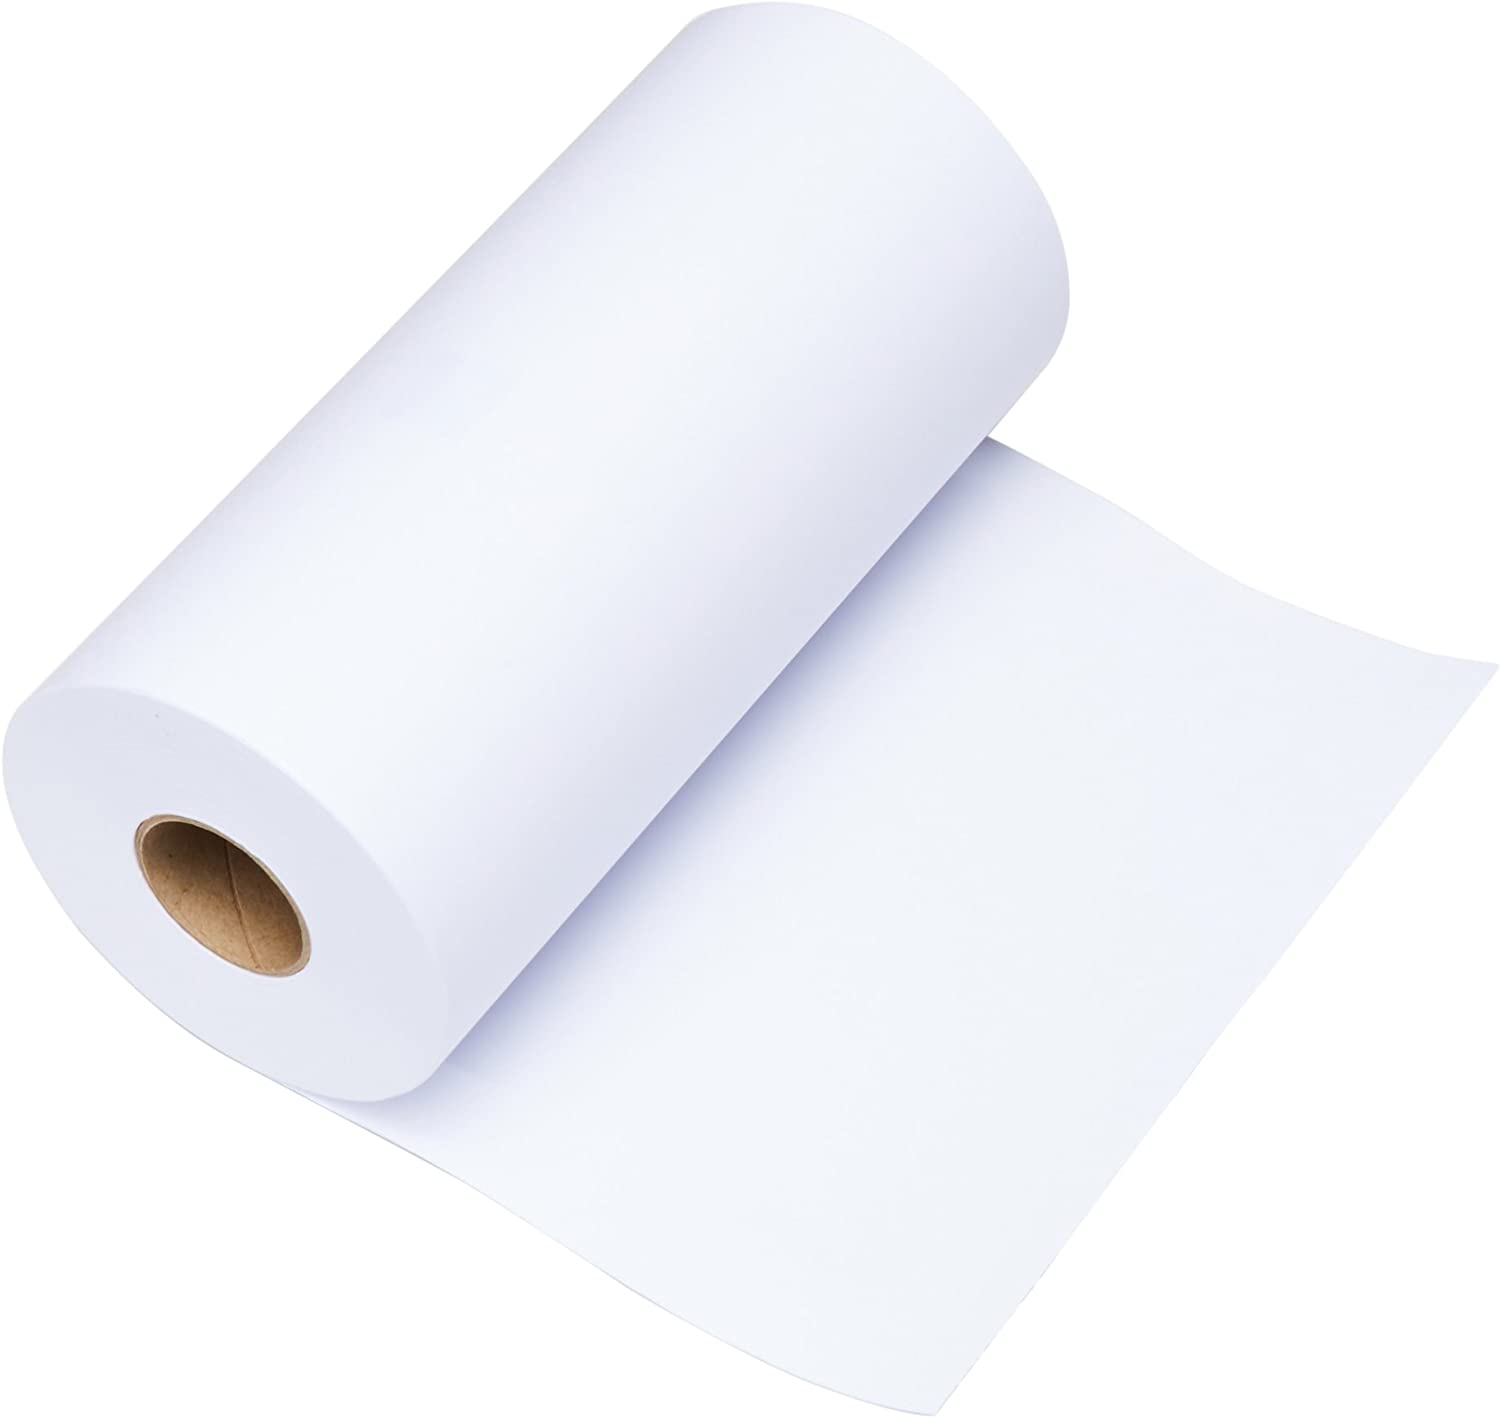 Canon IJM022 297mm 120m - Papel para plotter: Amazon.es: Oficina y papelería